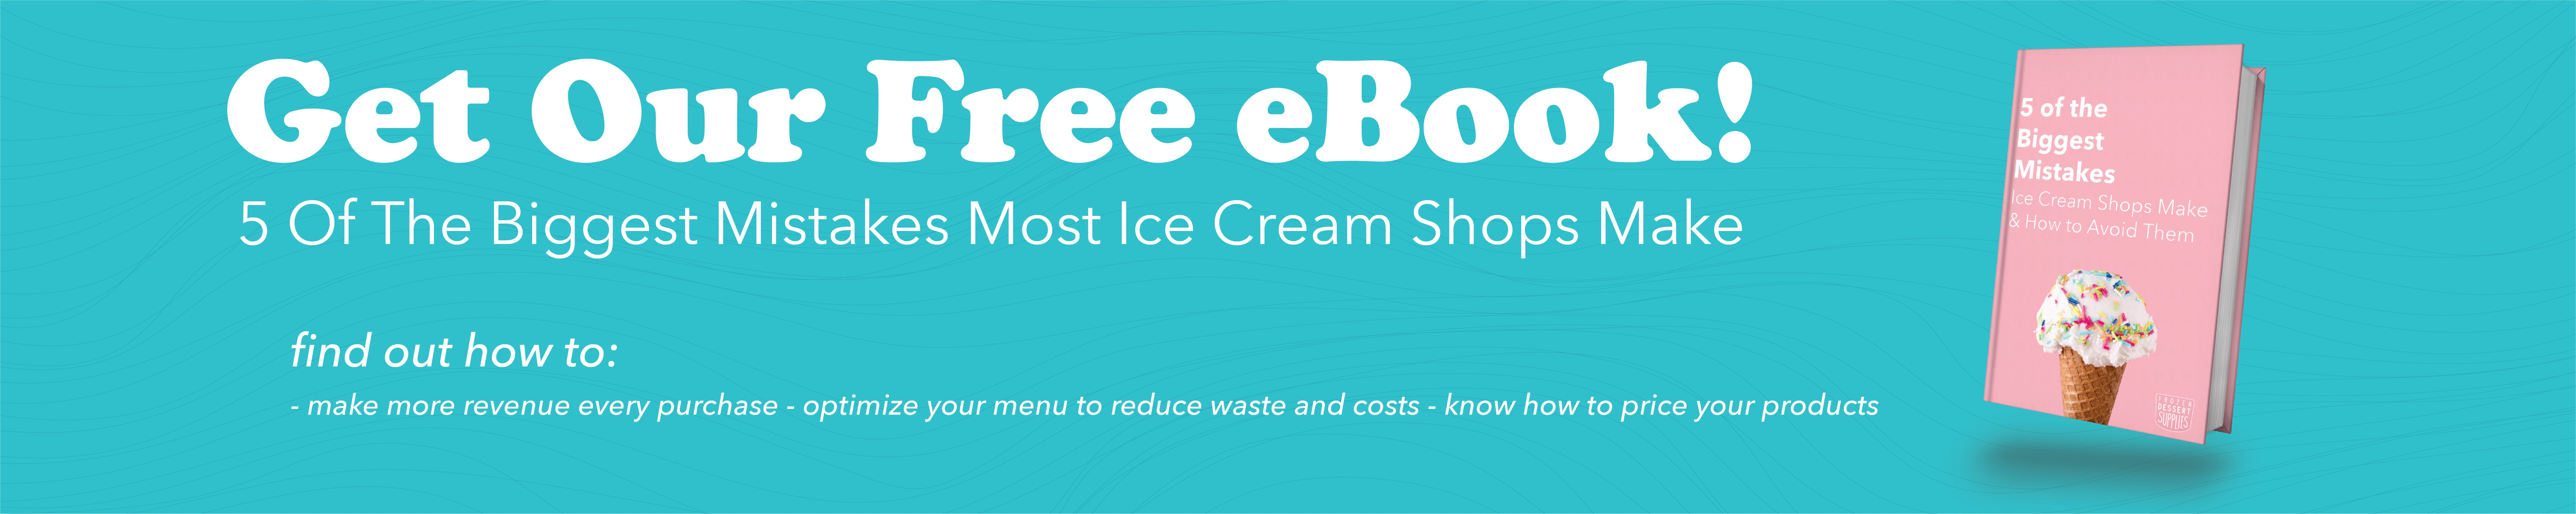 Free Ebook, America's Top 10 Favorite Ice Cream Flavors and the Best Toppings to Go With Them